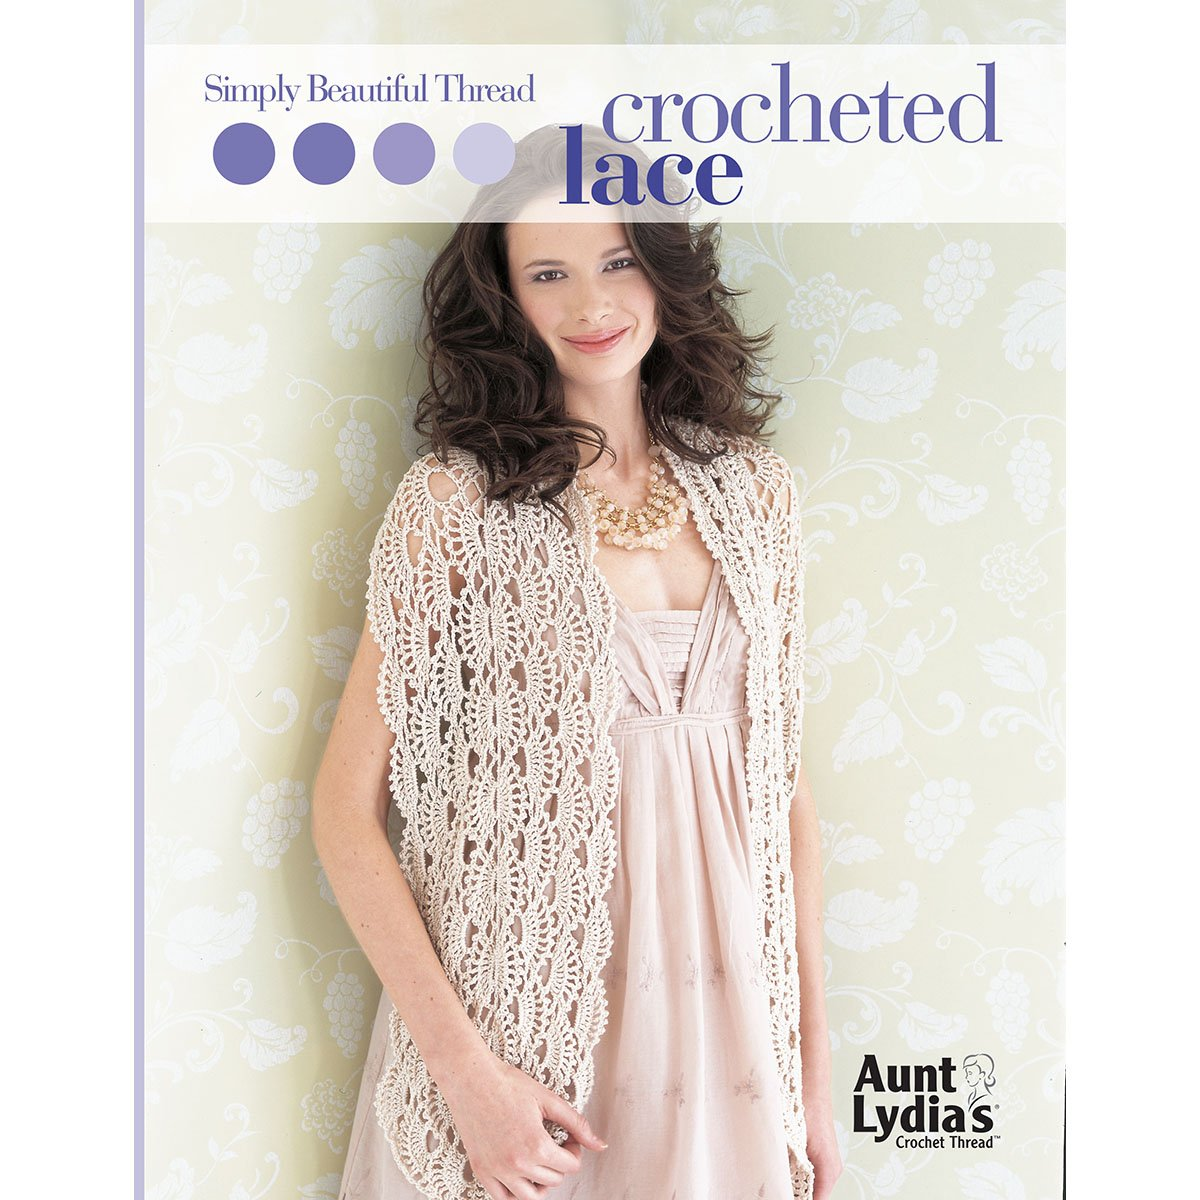 Simply Beautiful Thread Crocheted Lace